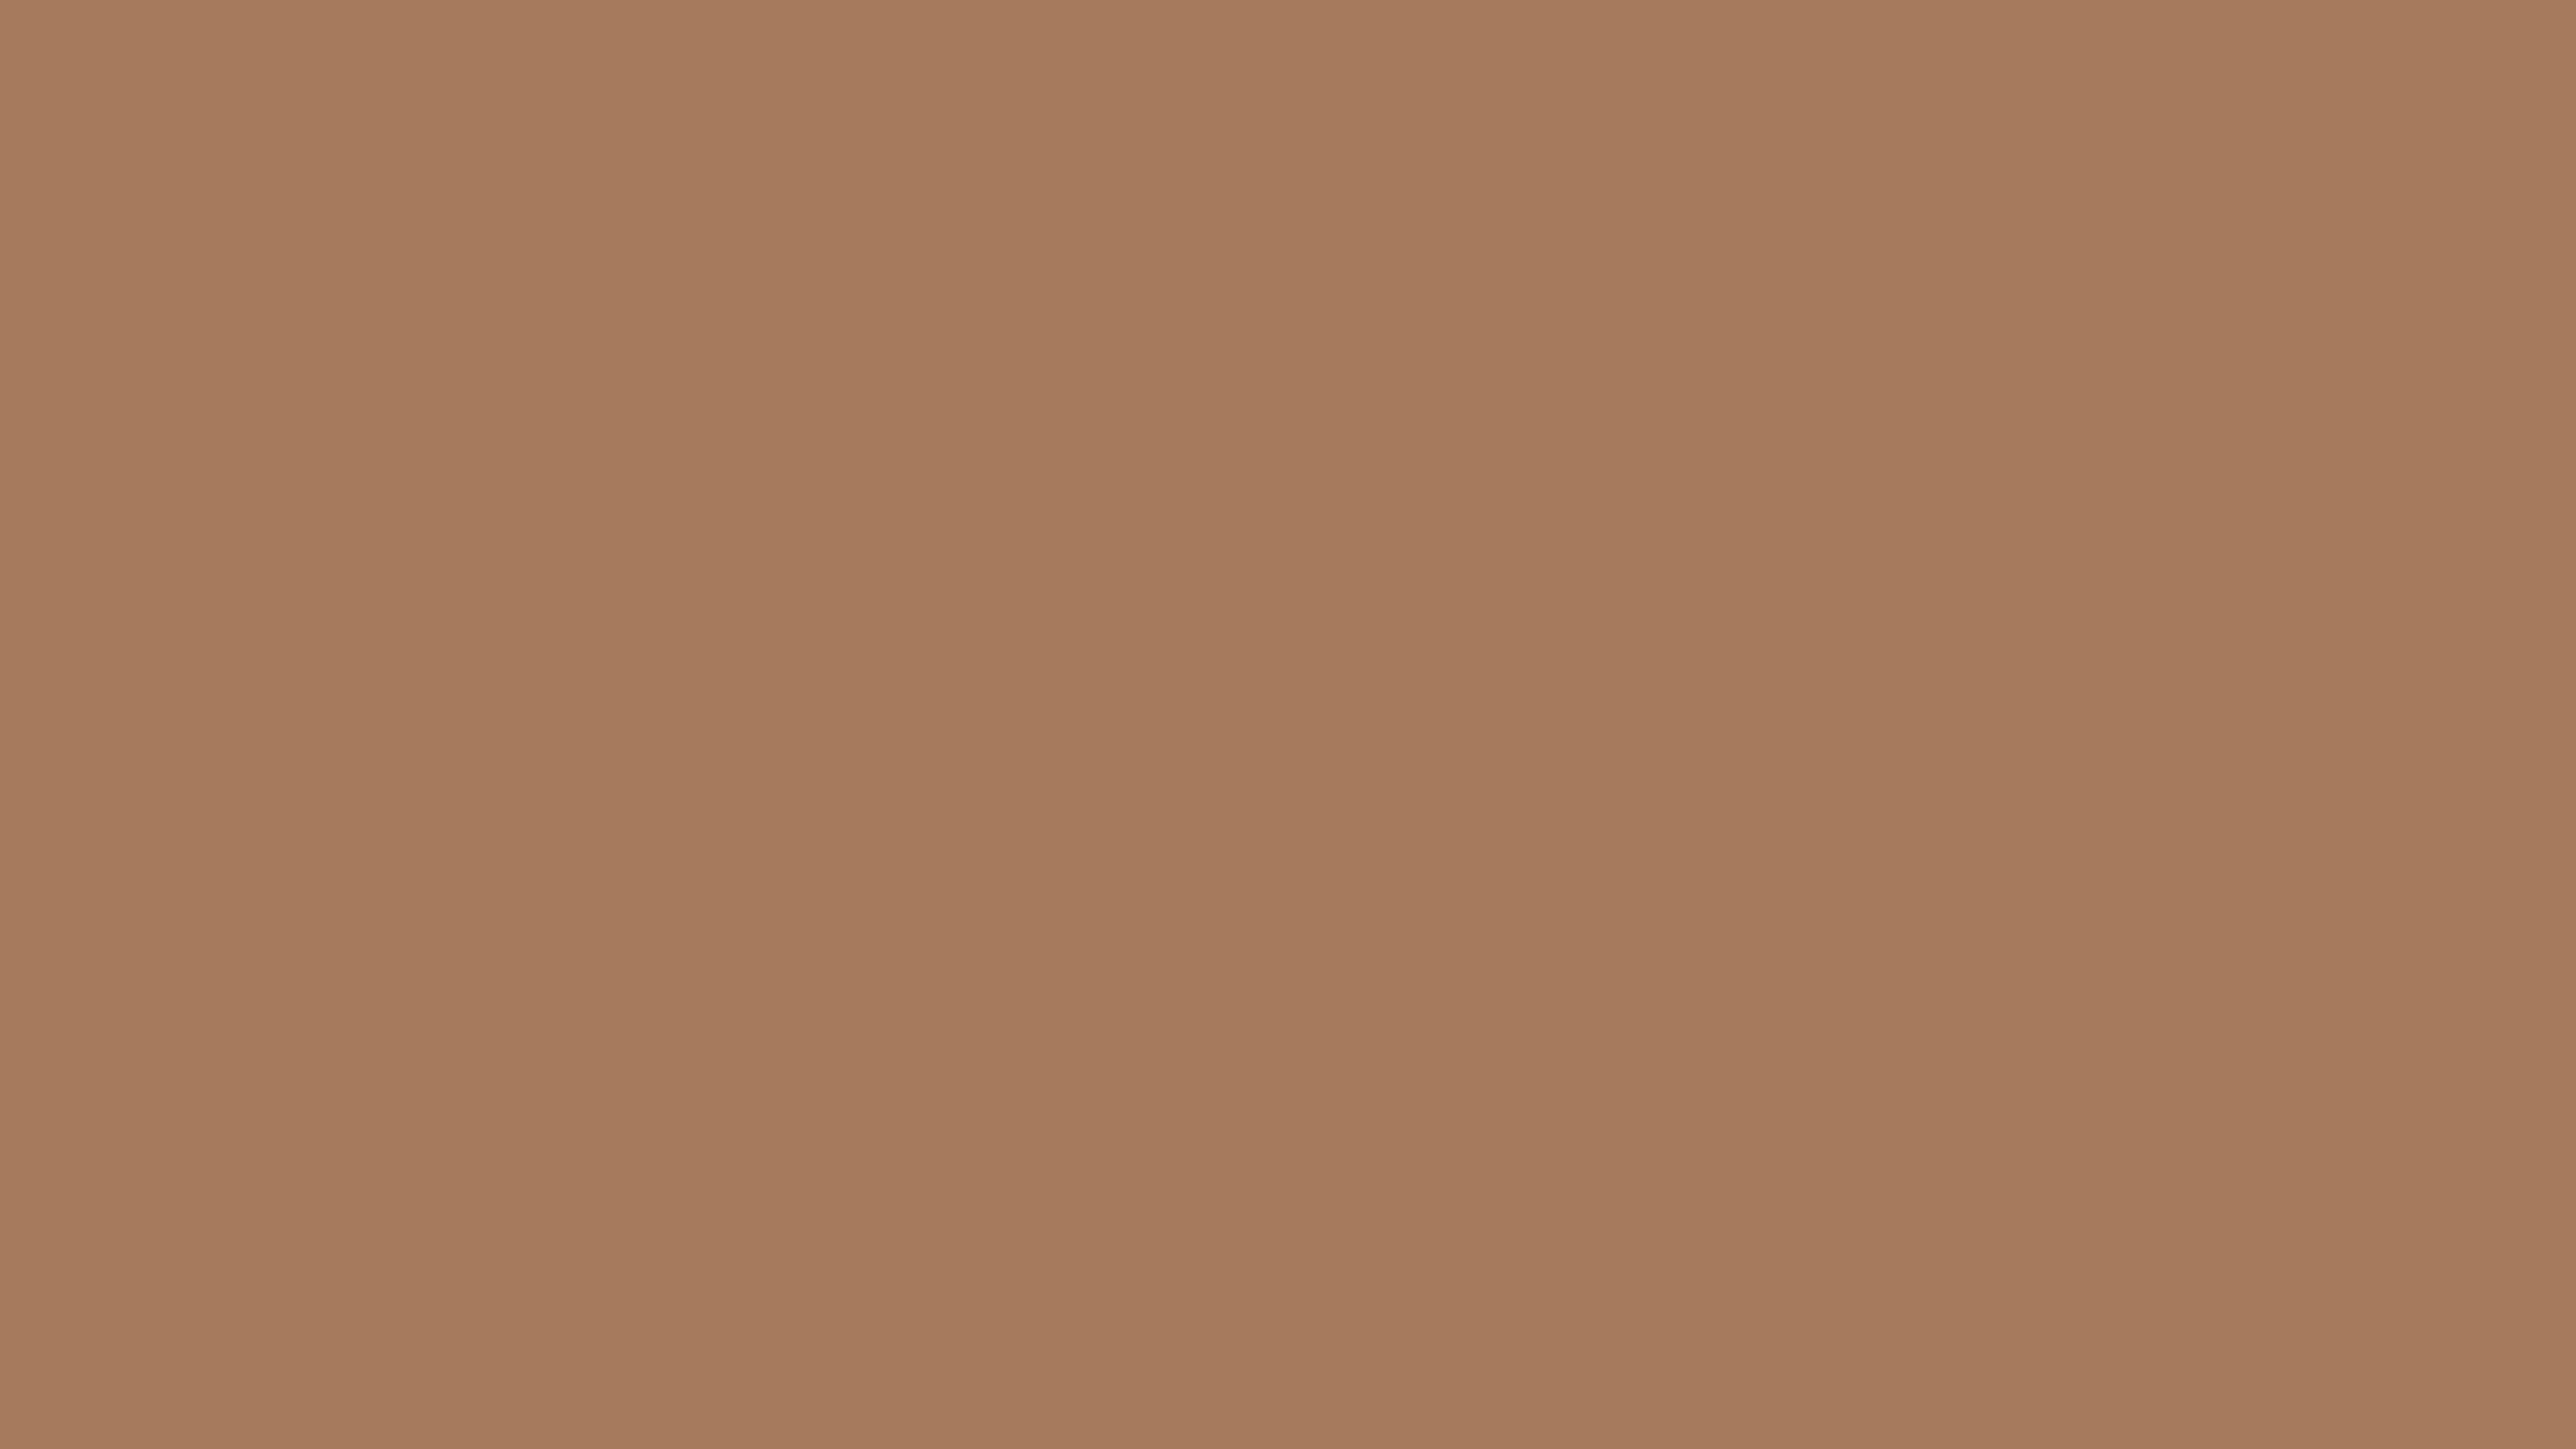 5120x2880 Tuscan Tan Solid Color Background